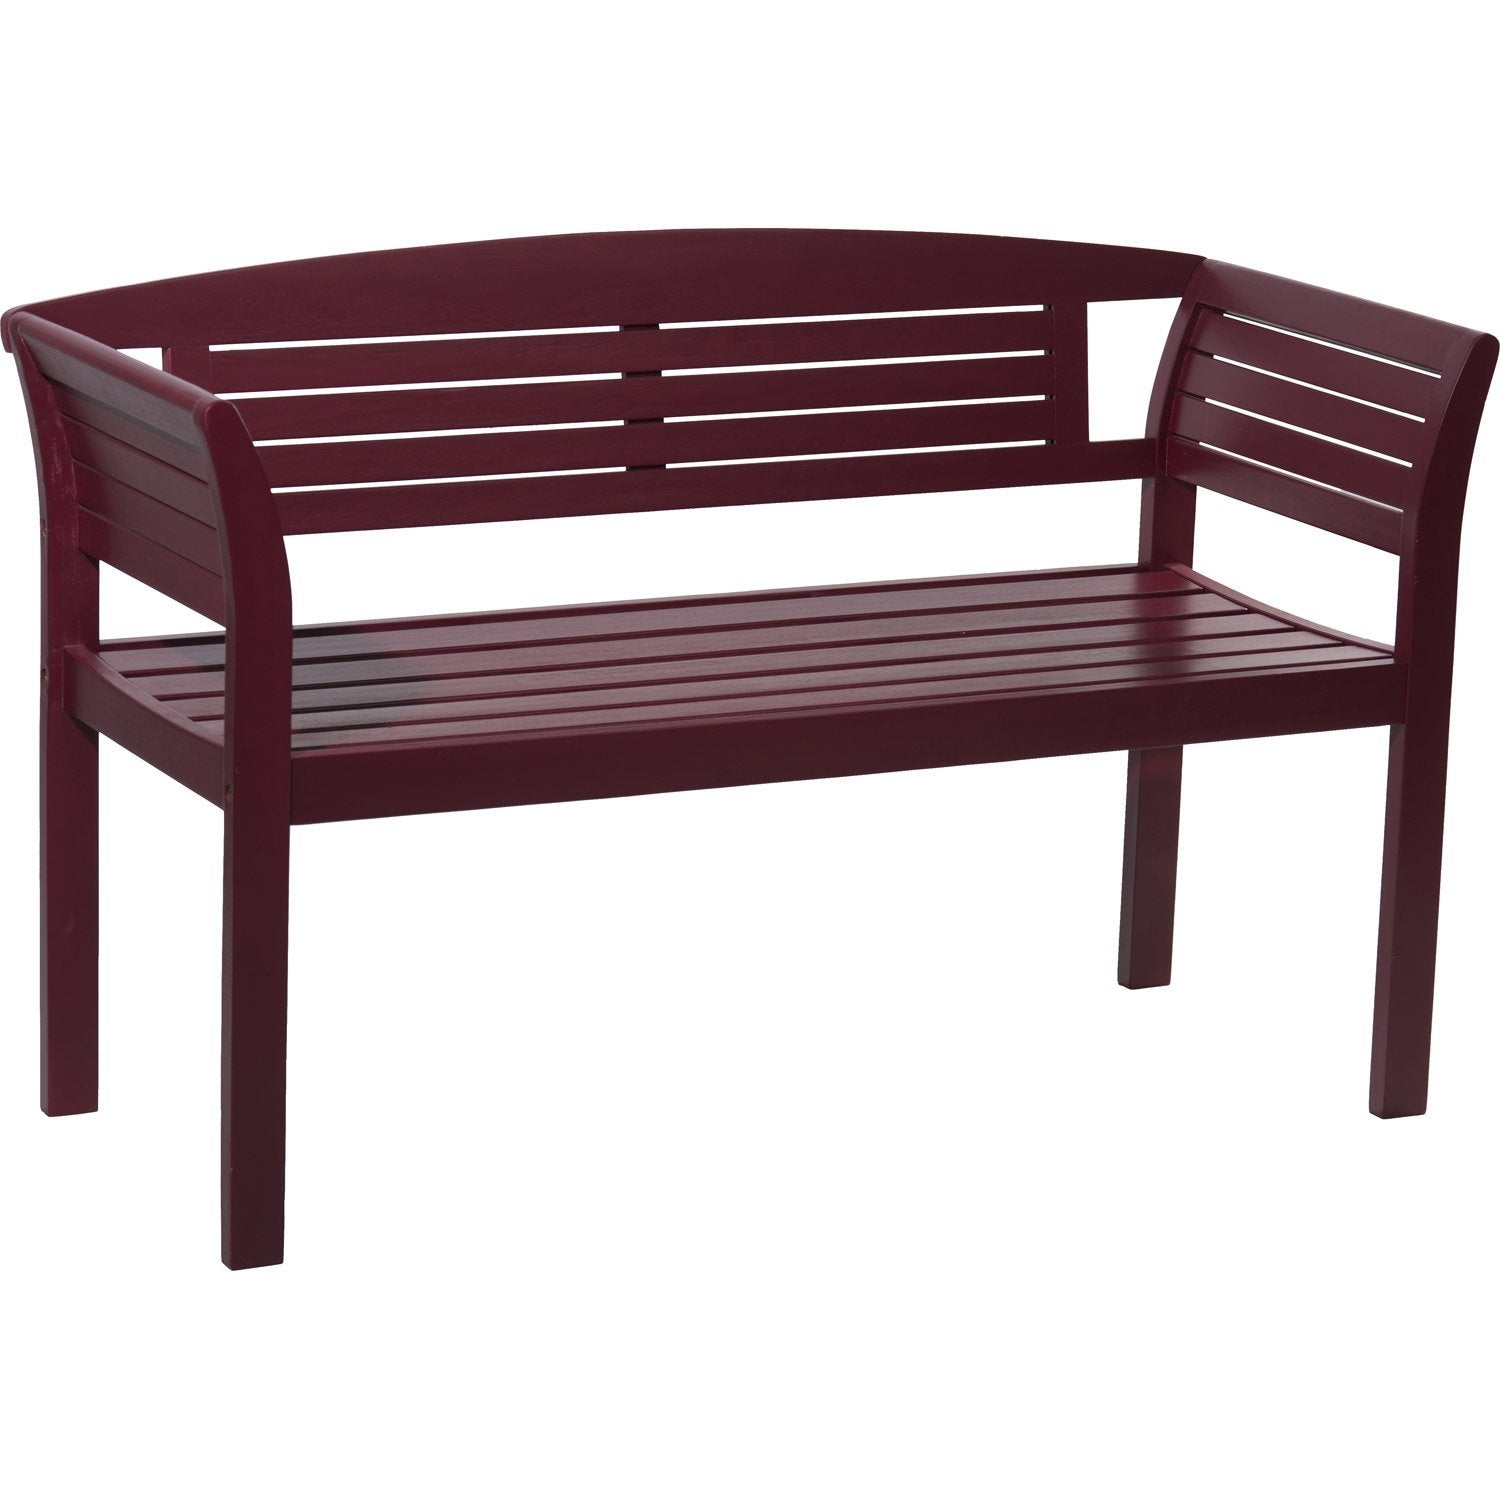 Banc 2 places de jardin en bois new york rouge leroy merlin - Banc de jardin 2 places ...